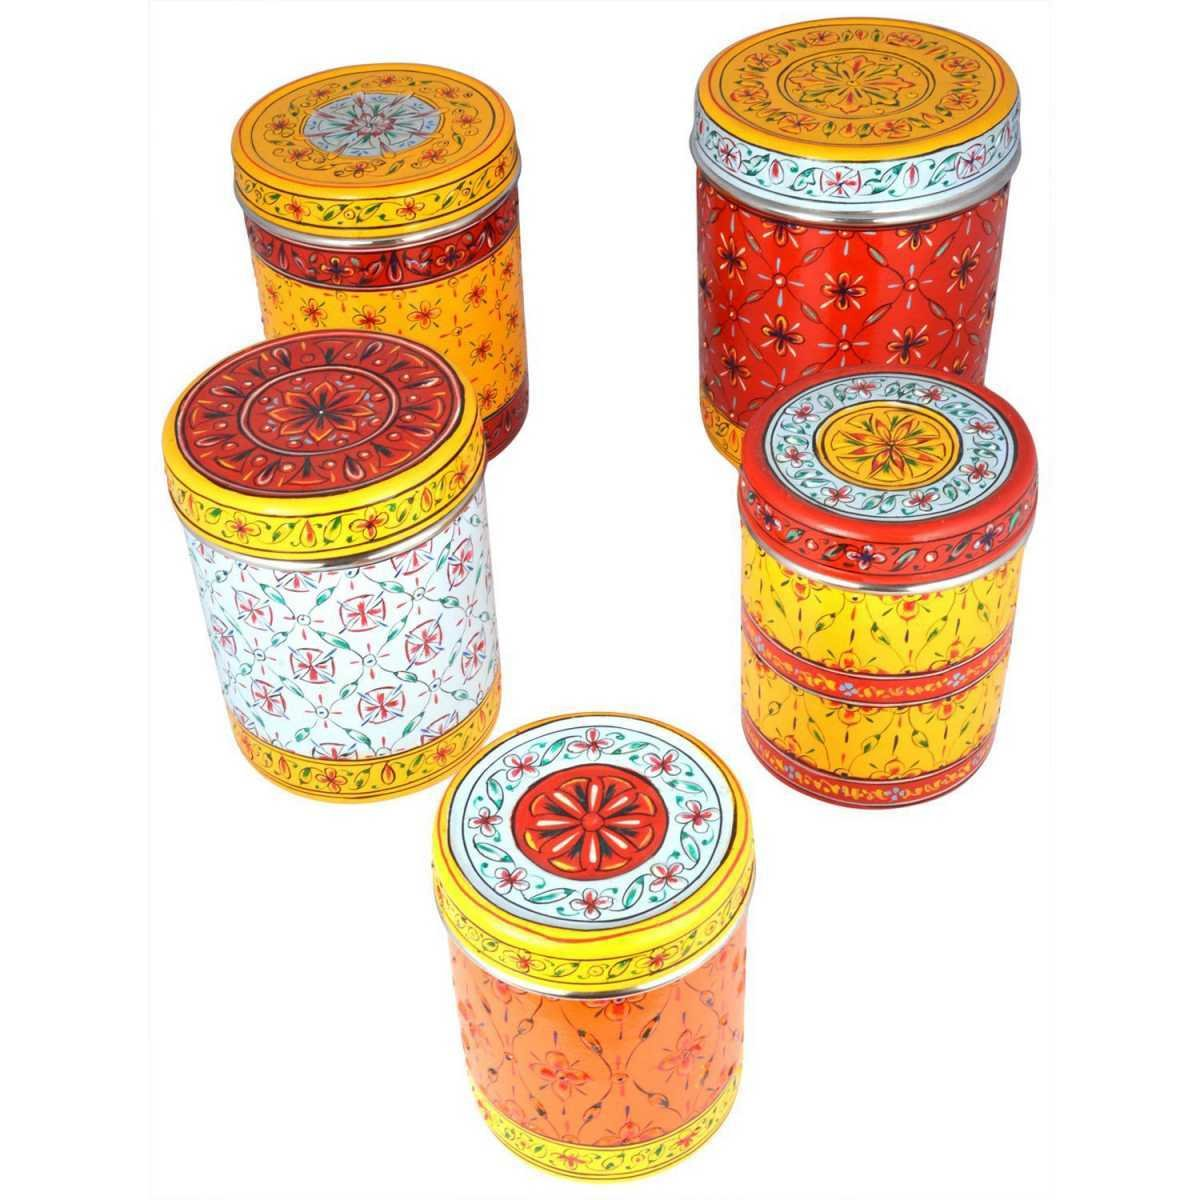 Indian Traditional Hand Painted Canister Storage Box Handicraft Set Of 5 by kaushalam